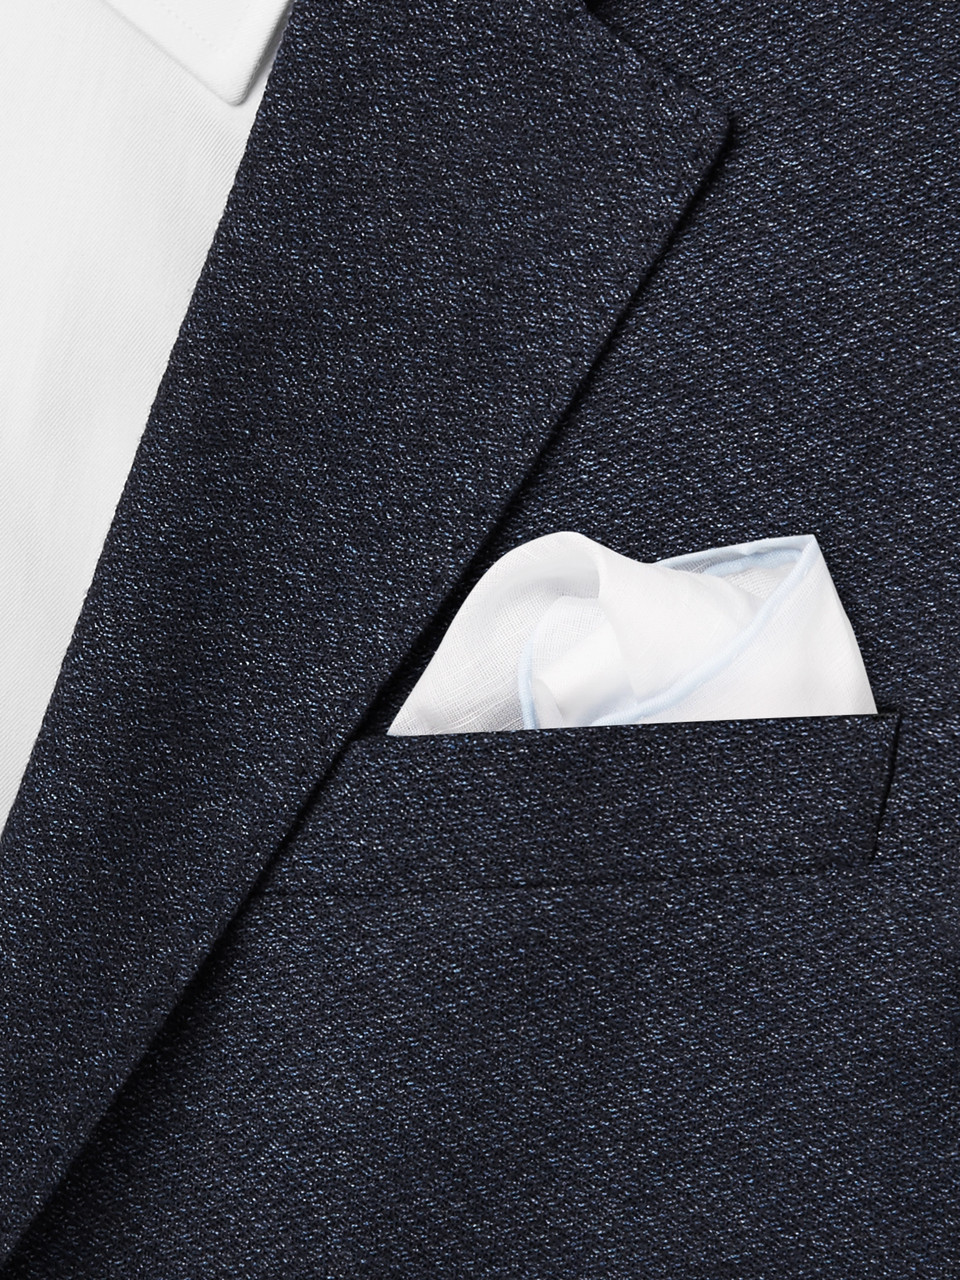 Anderson & Sheppard Contrast-Tipped Cotton and Linen-Blend Pocket Square